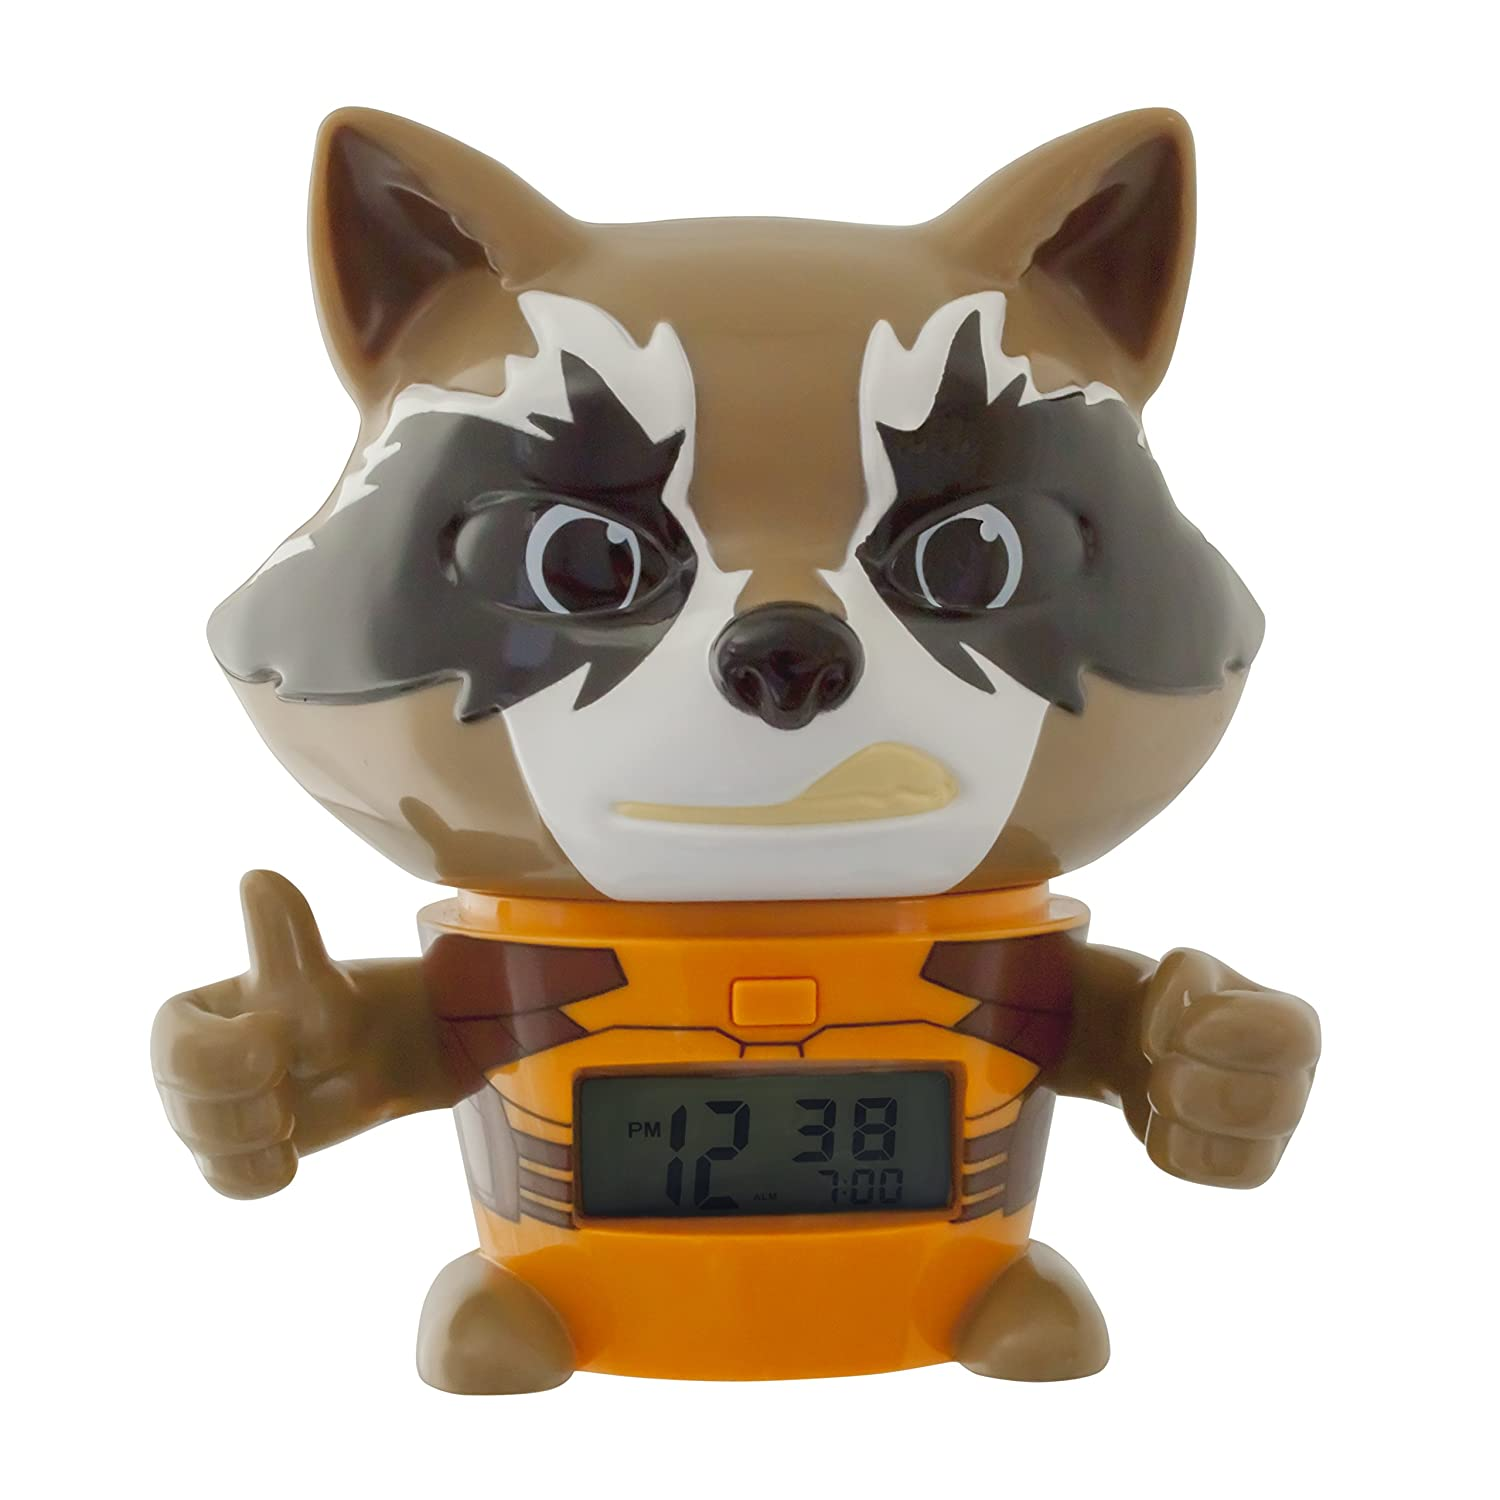 BulbBotz Marvel 2021357 Guardians of the Galaxy Vol.2 Rocket Raccoon Kids Night Light Alarm Clock with Characterised Sound | brown/orange| plastic | 5.5 inches tall | LCD display | boy girl | official Accessory Consumer Accessories